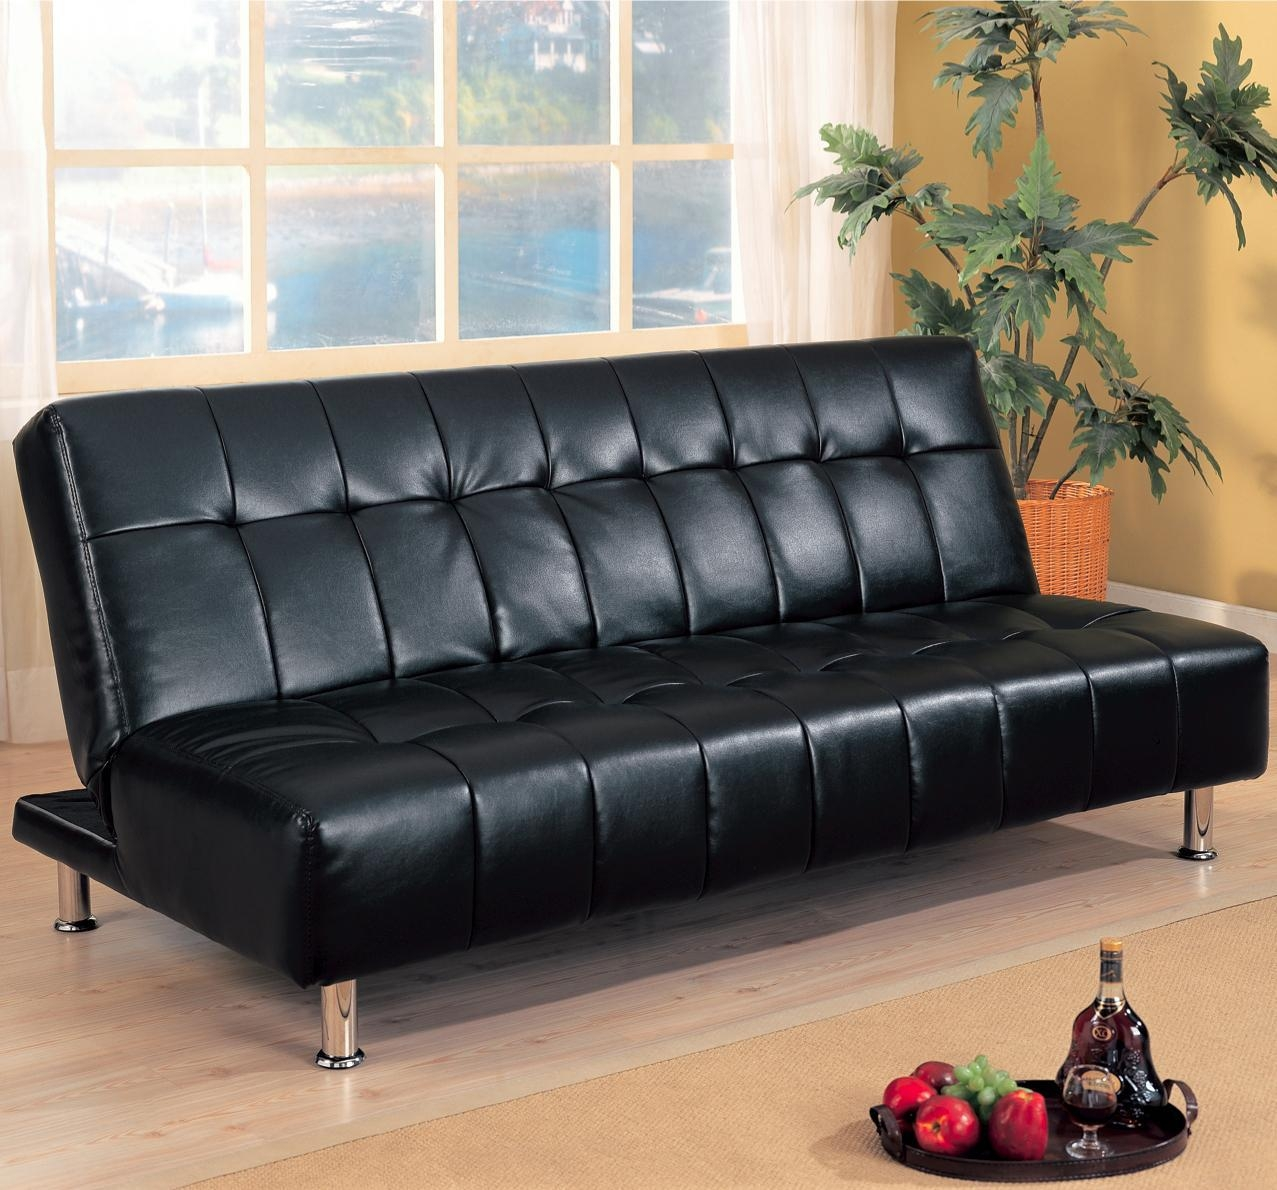 Convertible Sofa Futon | Tehranmix Decoration With Black Leather Convertible Sofas (Image 8 of 20)